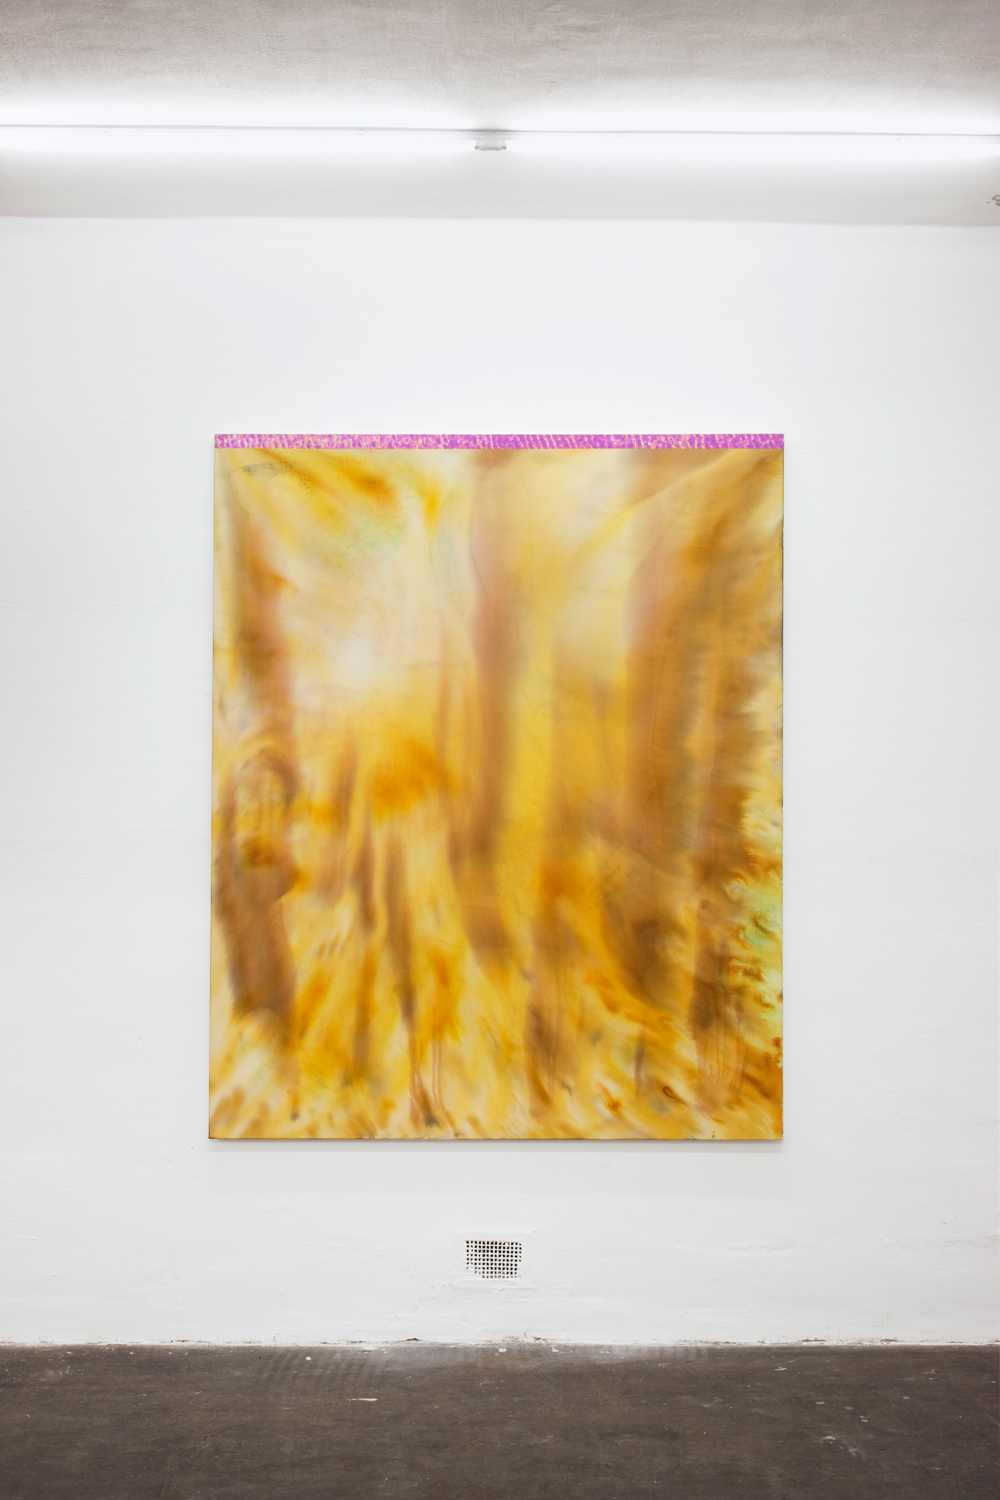 Untitled, 2013, silk paint, ink, glue, gesso and oil on sailing canvas, 179 x 145 cm